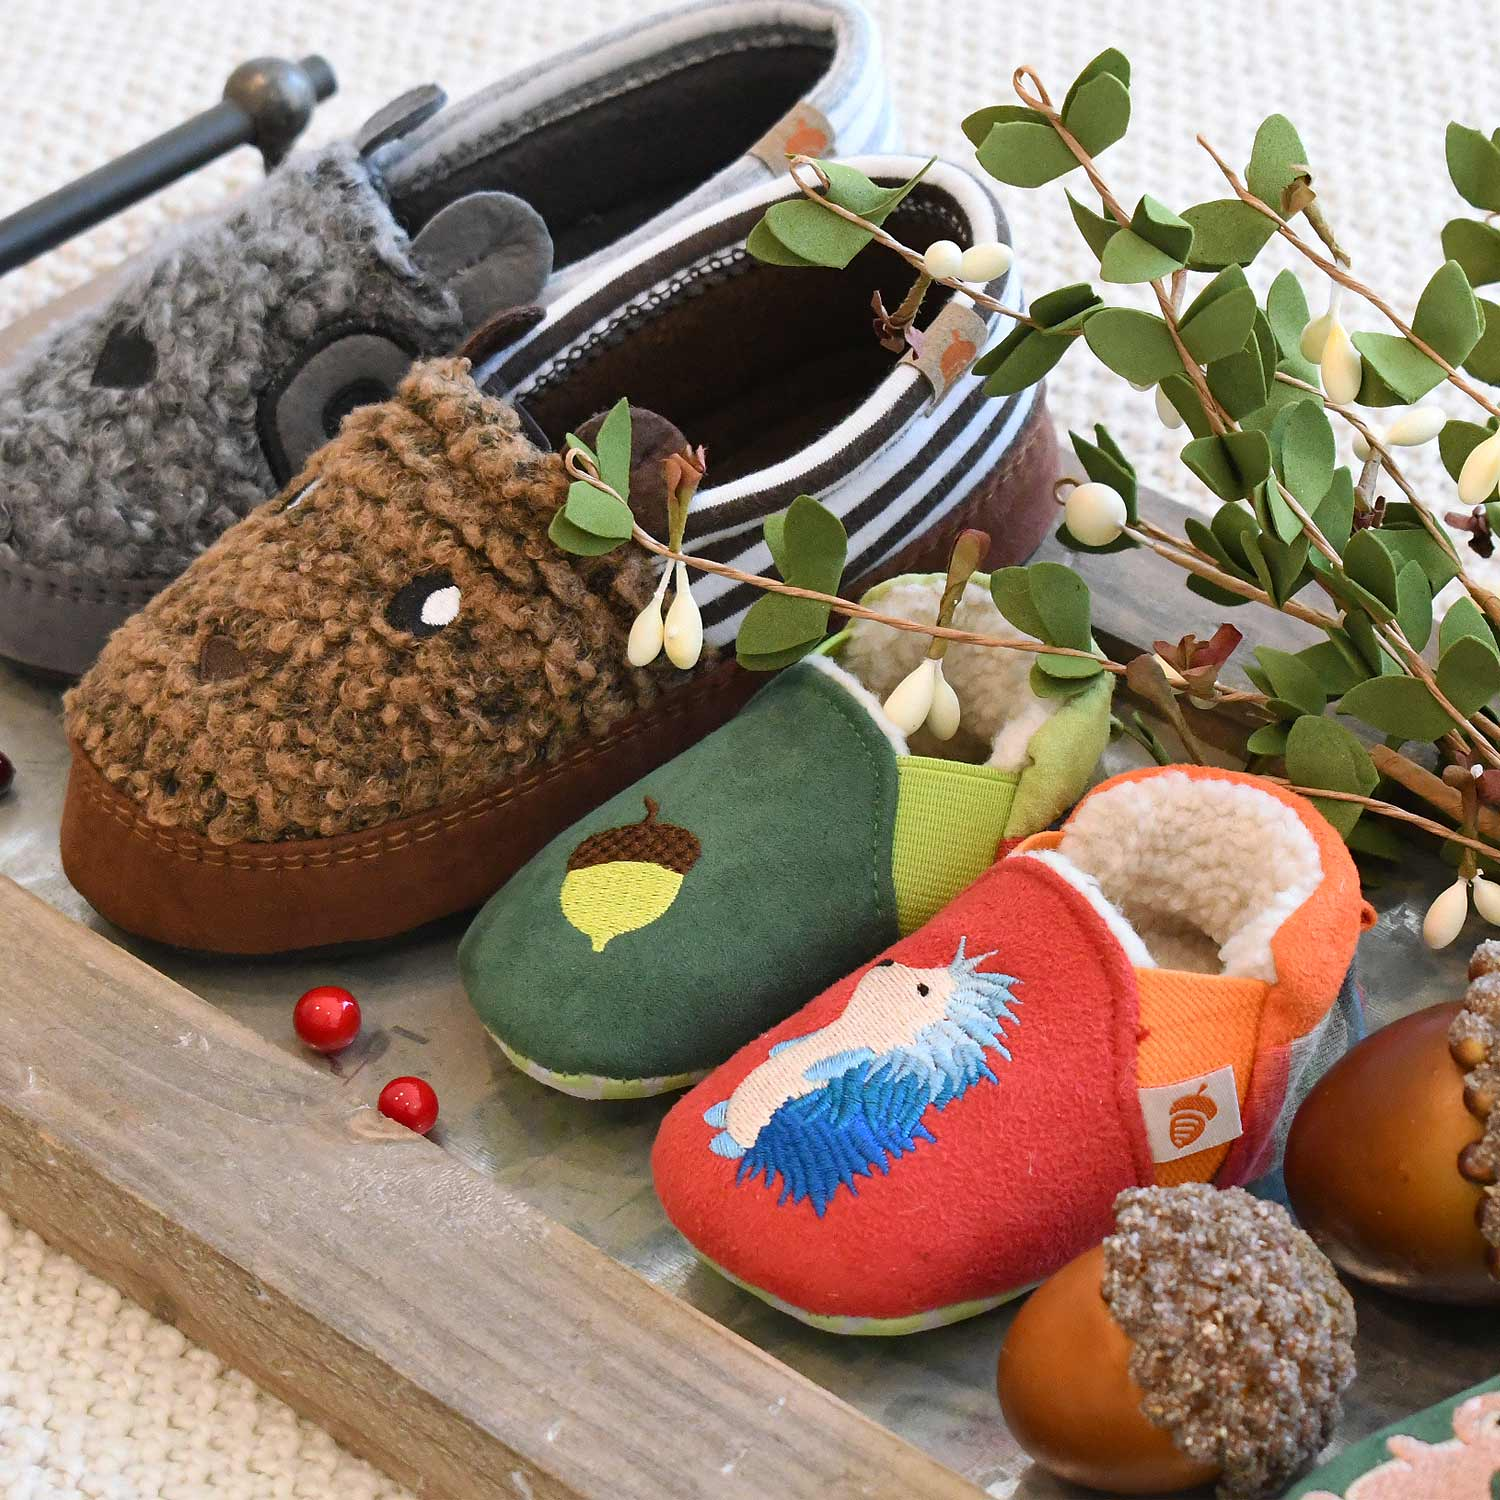 Selection of kids slippers on a tray with greenery - Acorn critter mocs and toddler easy-on slippers